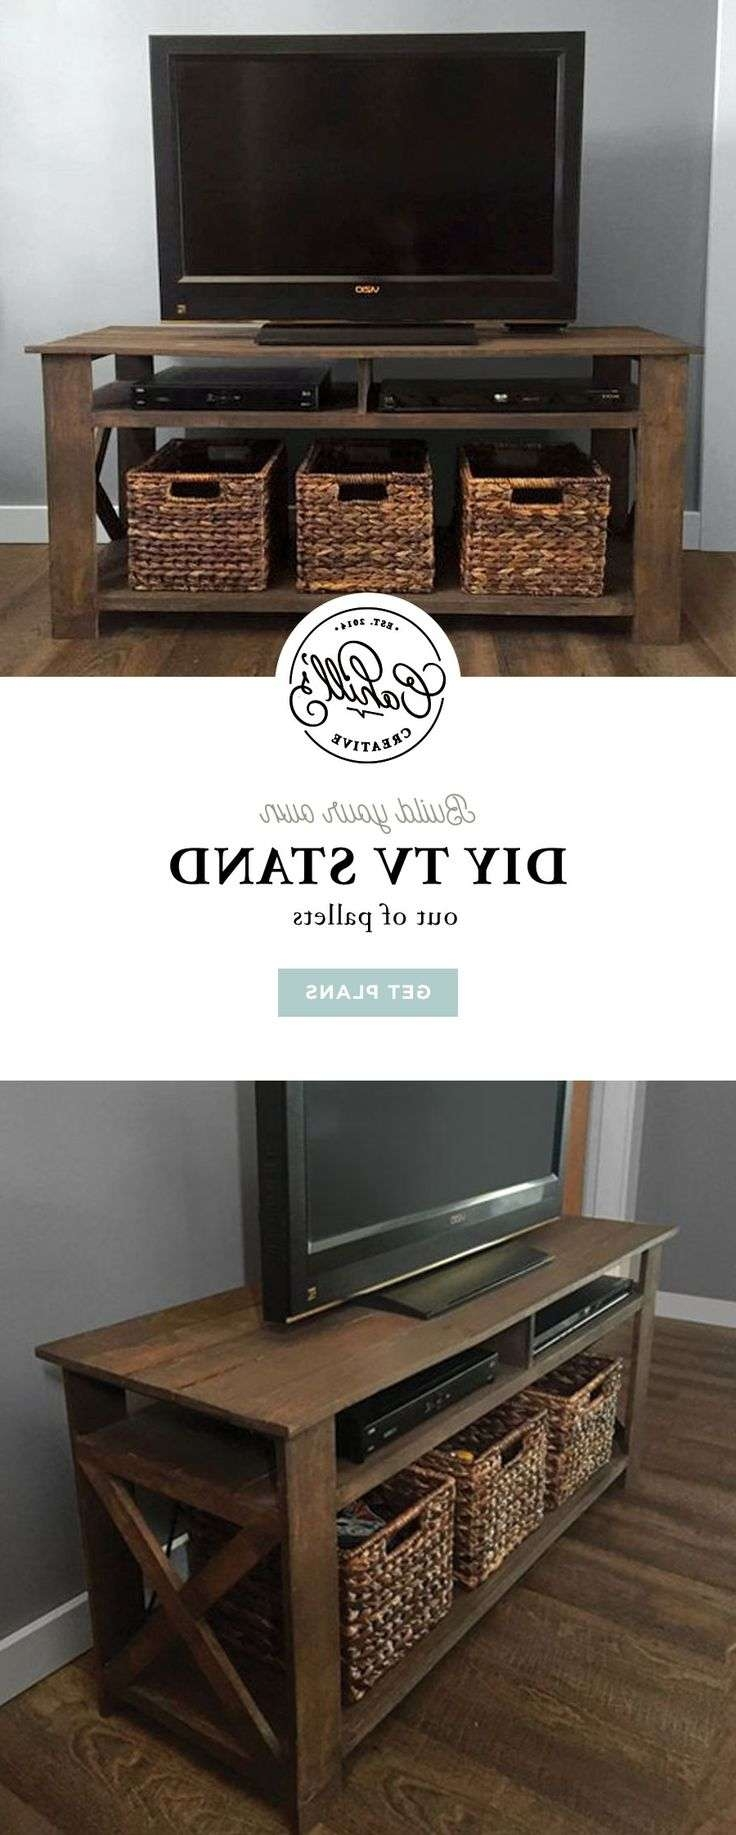 Tv : White Tv Awesome Iconic Tv Stands 50 Creative Diy Tv Stand Regarding Iconic Tv Stands (View 10 of 15)